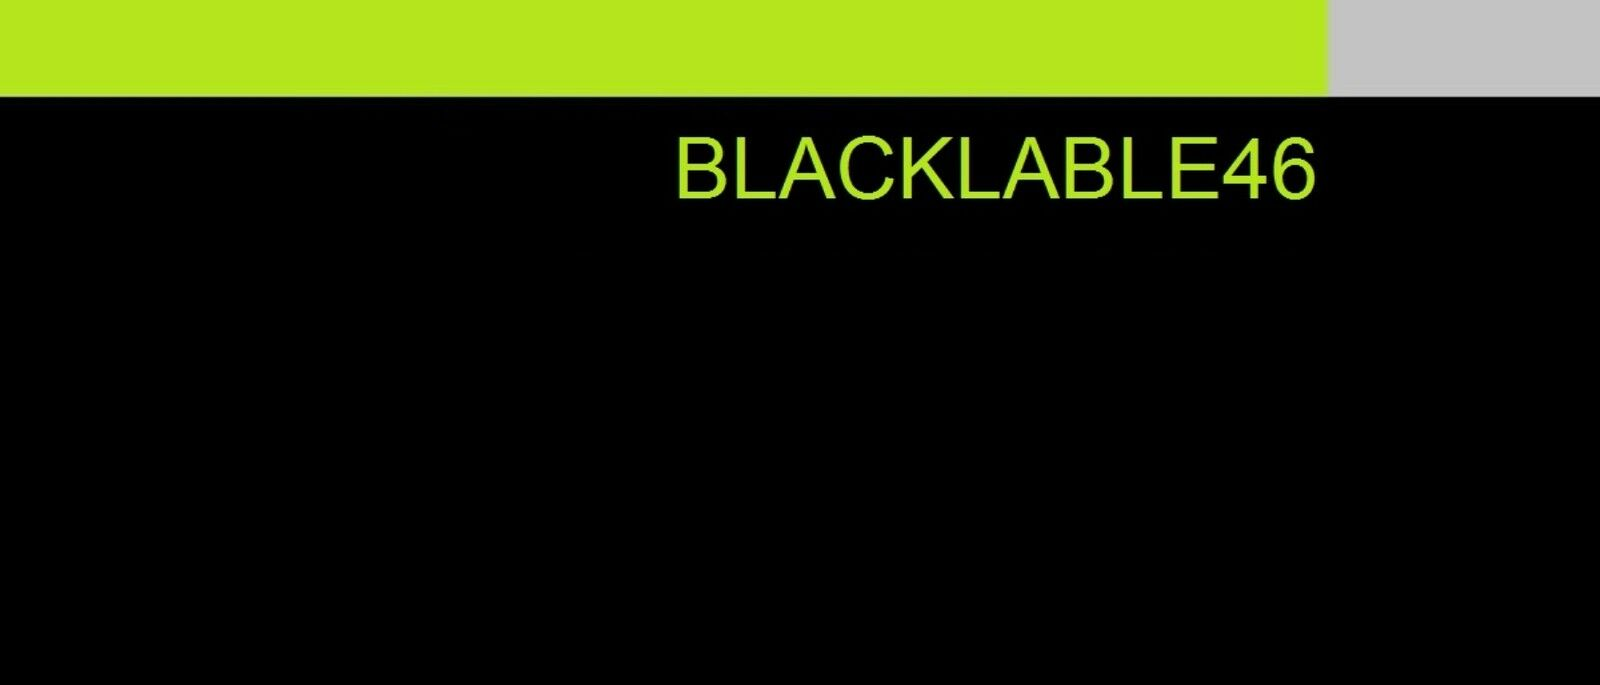 blacklable46